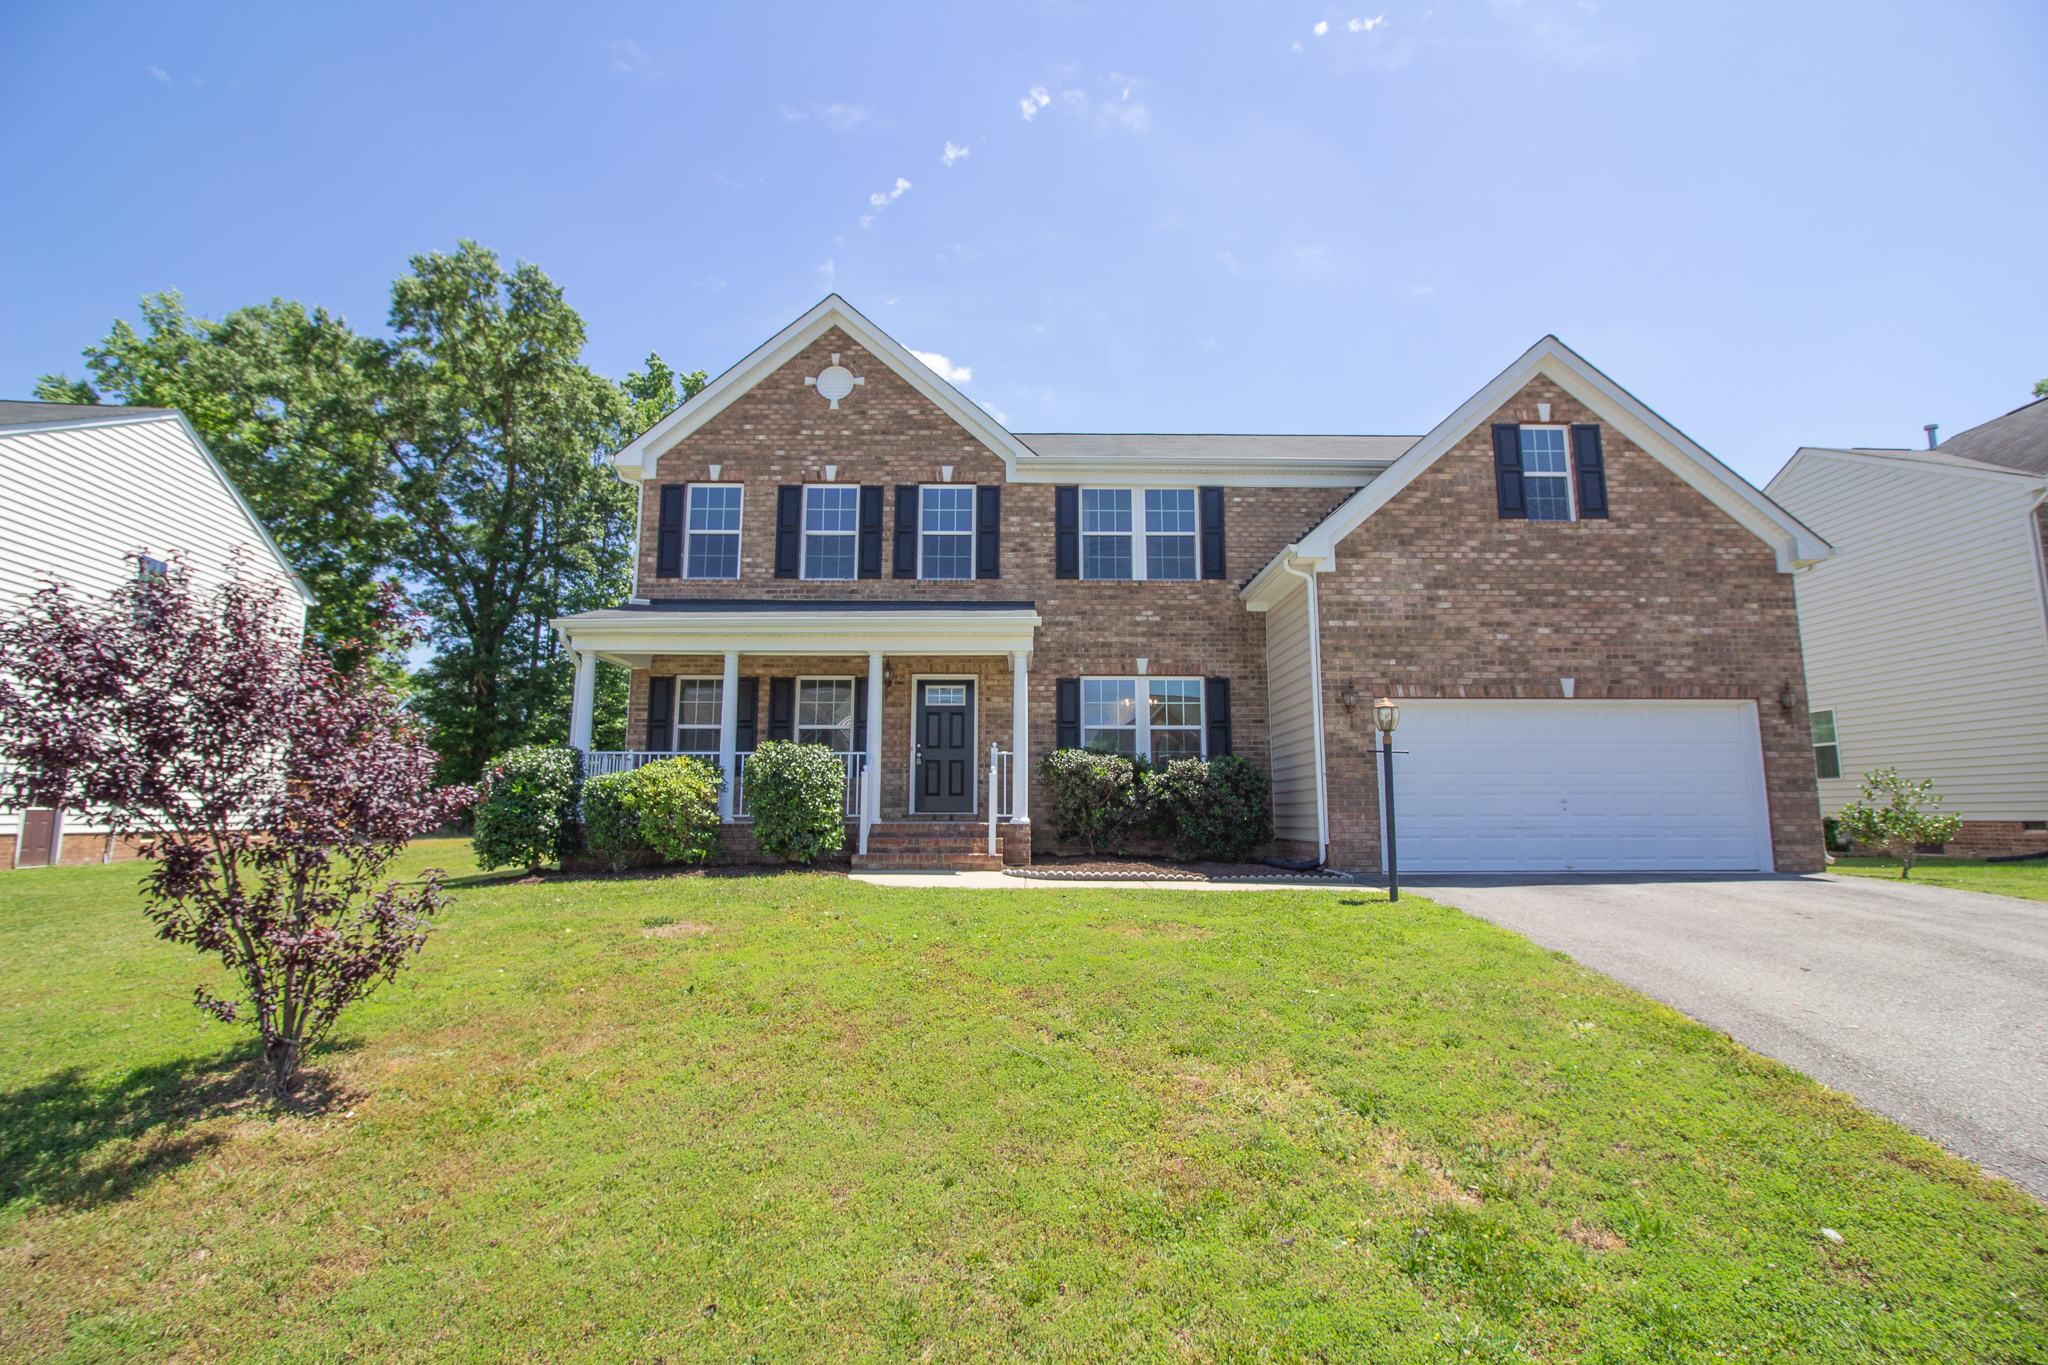 Home for Sale in Richmond – 7313 Rivendell Terrace